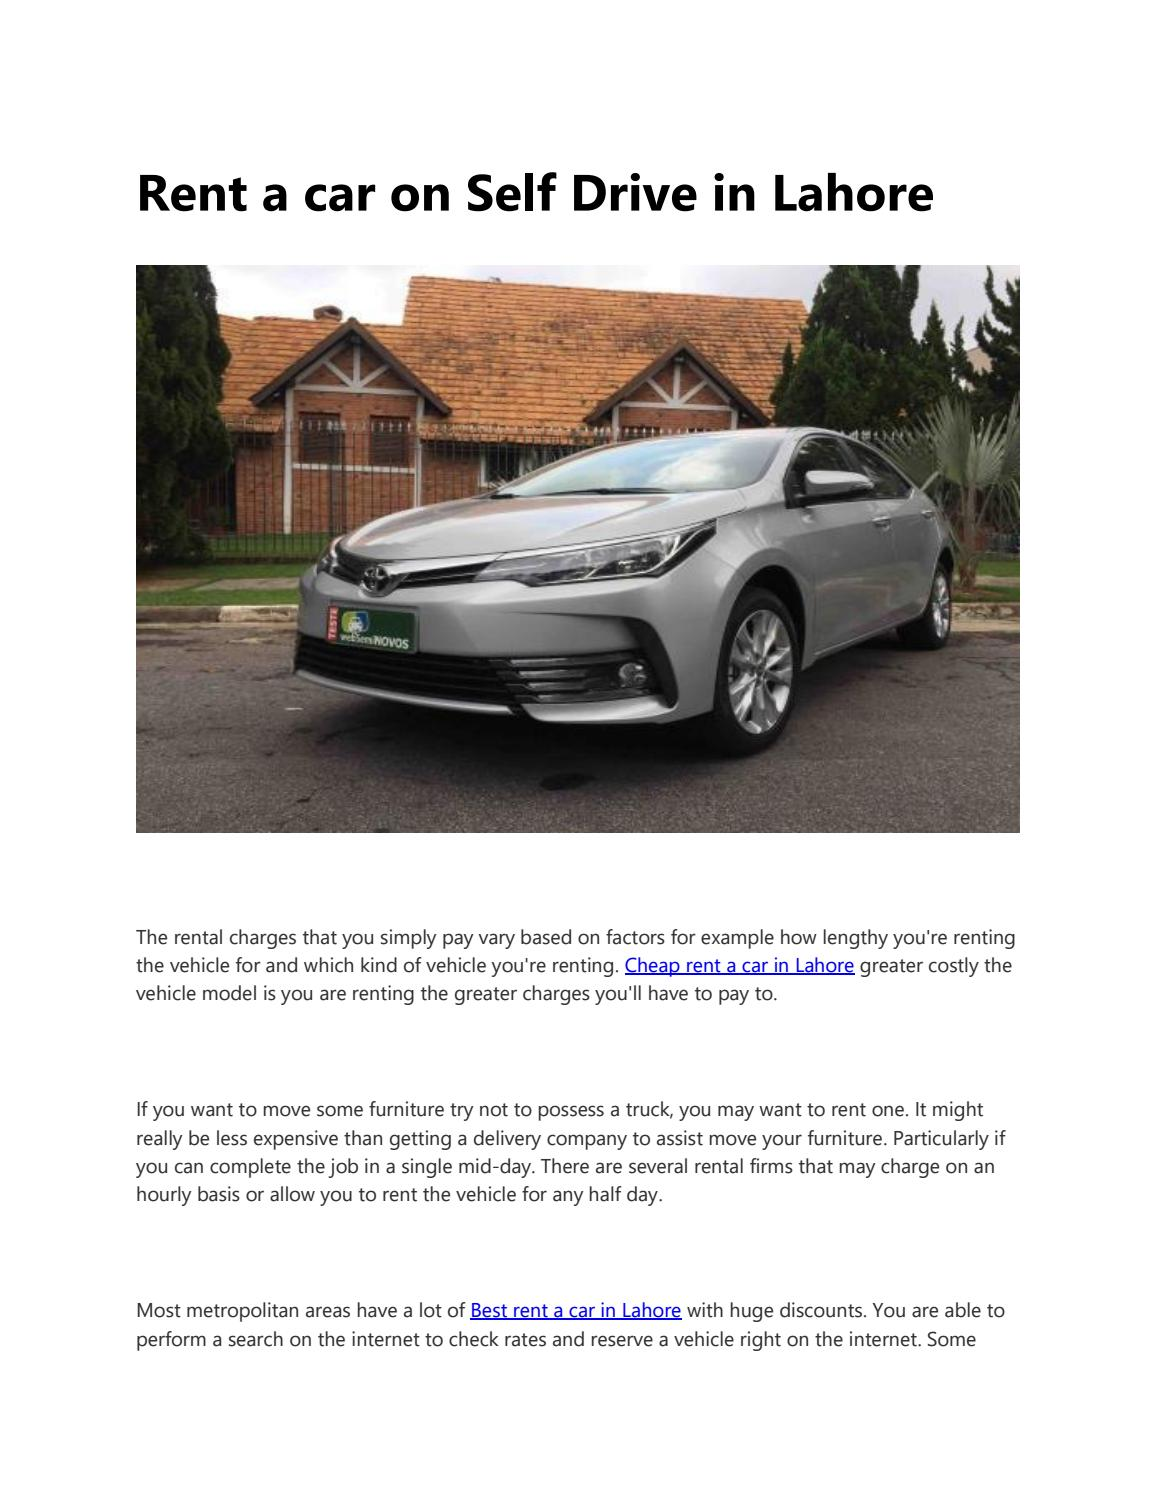 Rent a car on Self Drive in Lahore by ShaniTravels - issuu